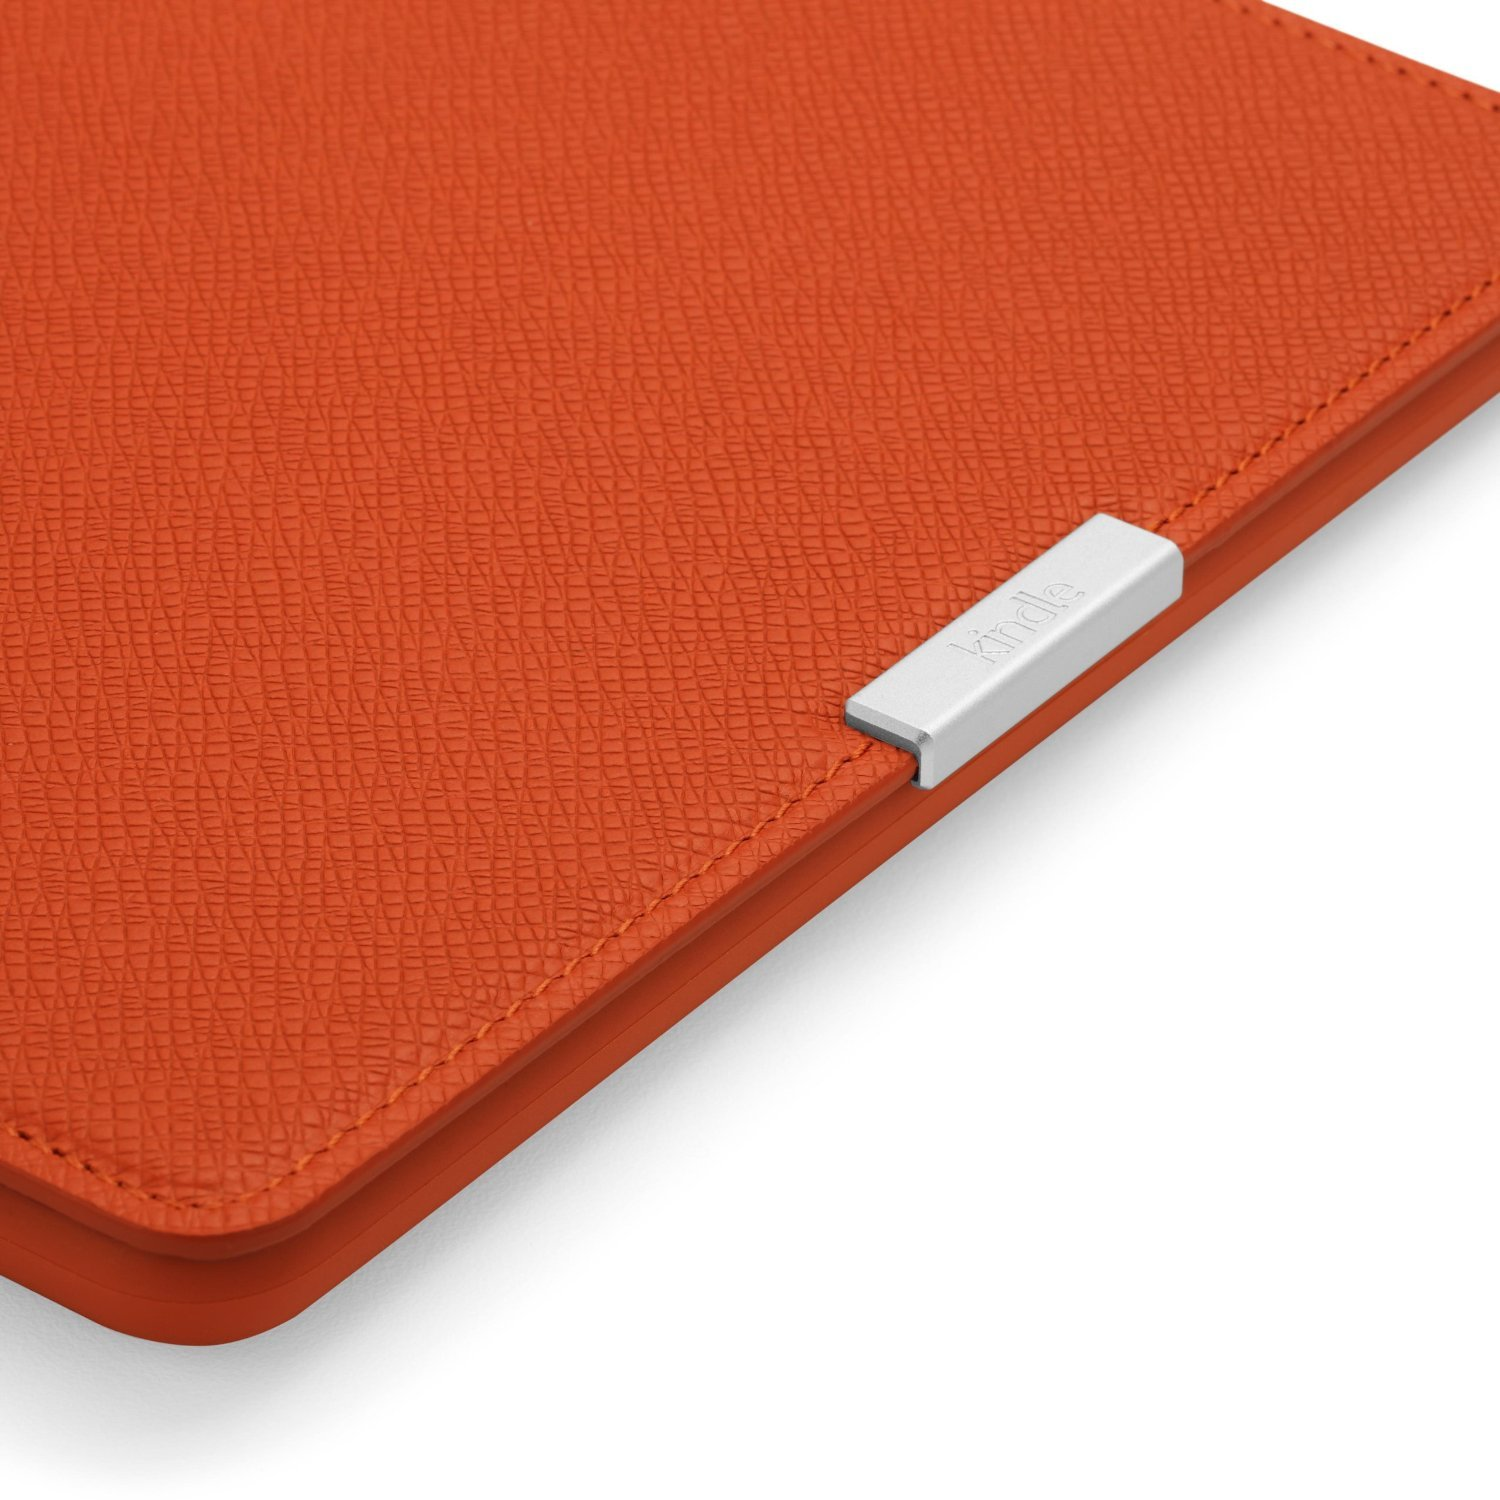 Чехол Leather Cover для Amazon Kindle Paperwhite Persimmon (Оранжевый). Фото N4